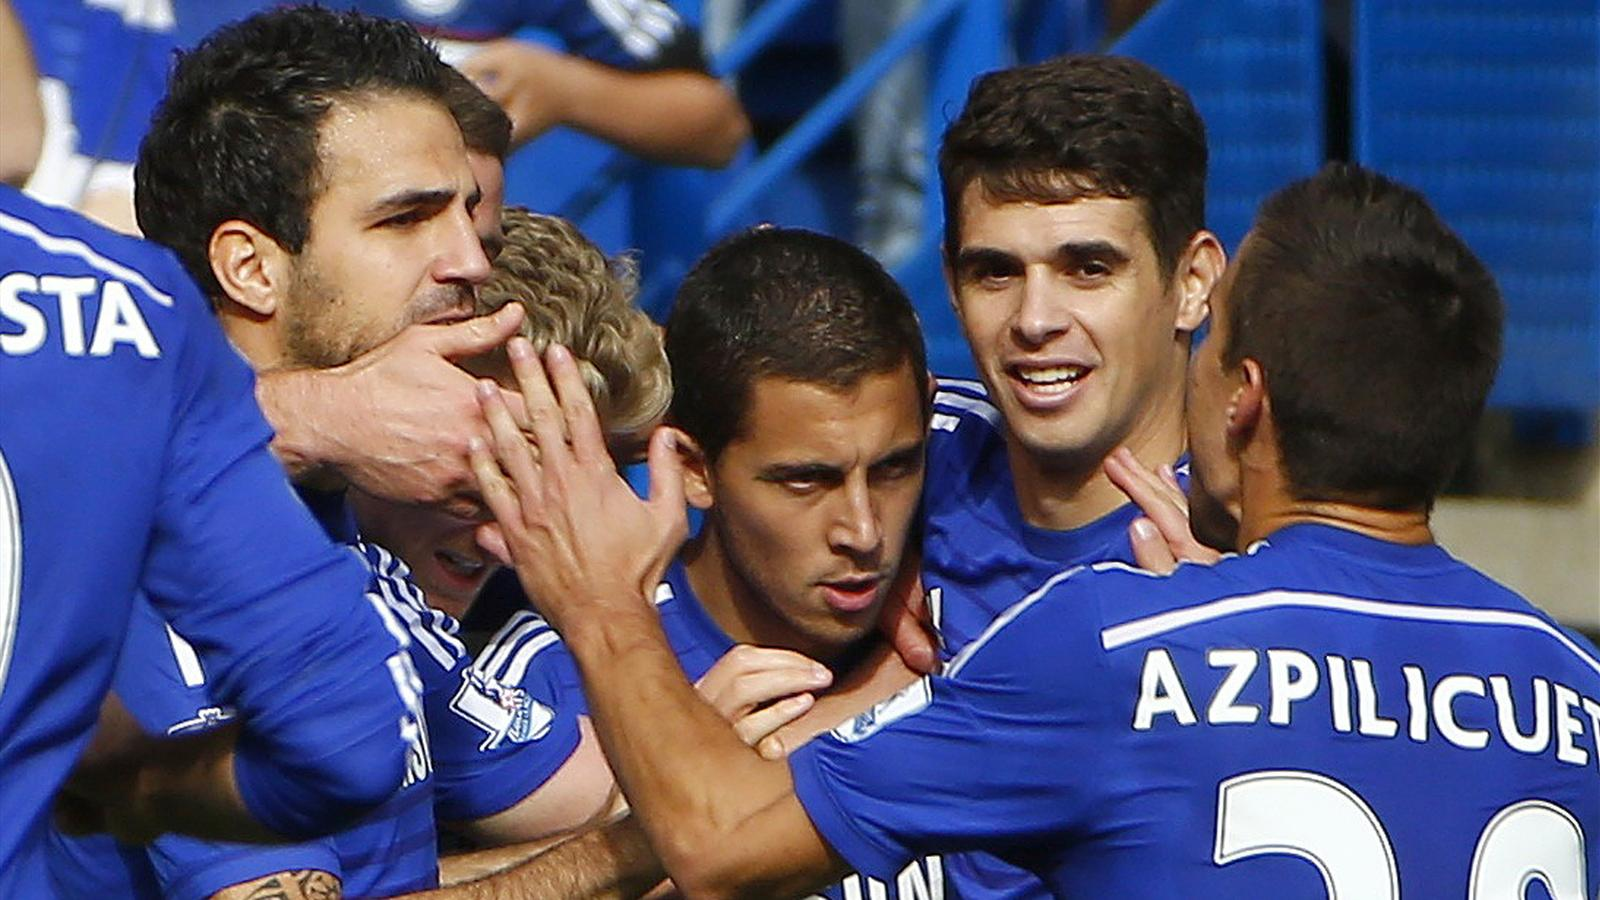 Chelsea's Eden Hazard (C) celebrates with teammates after scoring a penalty against Arsenal during their English Premier League soccer match at Stamford Bridge in London October 5, 2014. REUTERS/Eddie Keogh